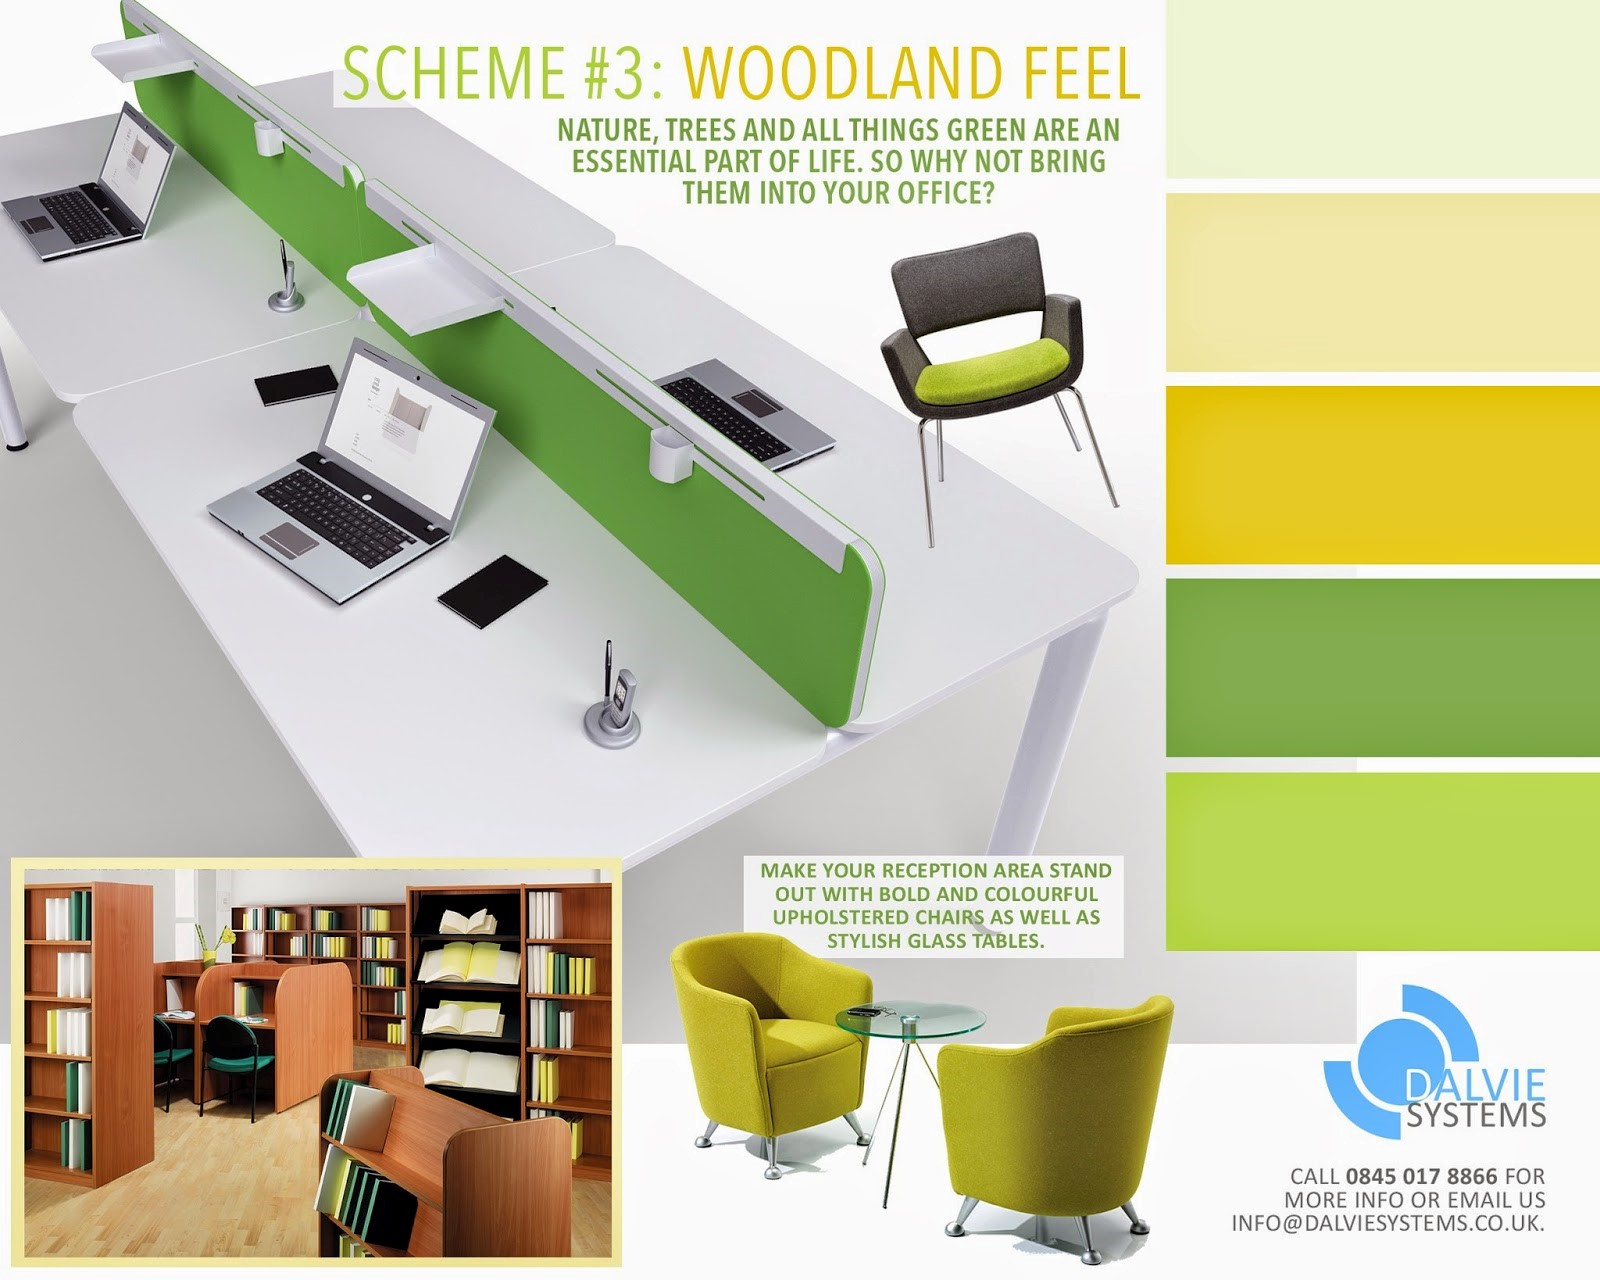 #3.5 Woodland Feel inspired by Dalvie Systems